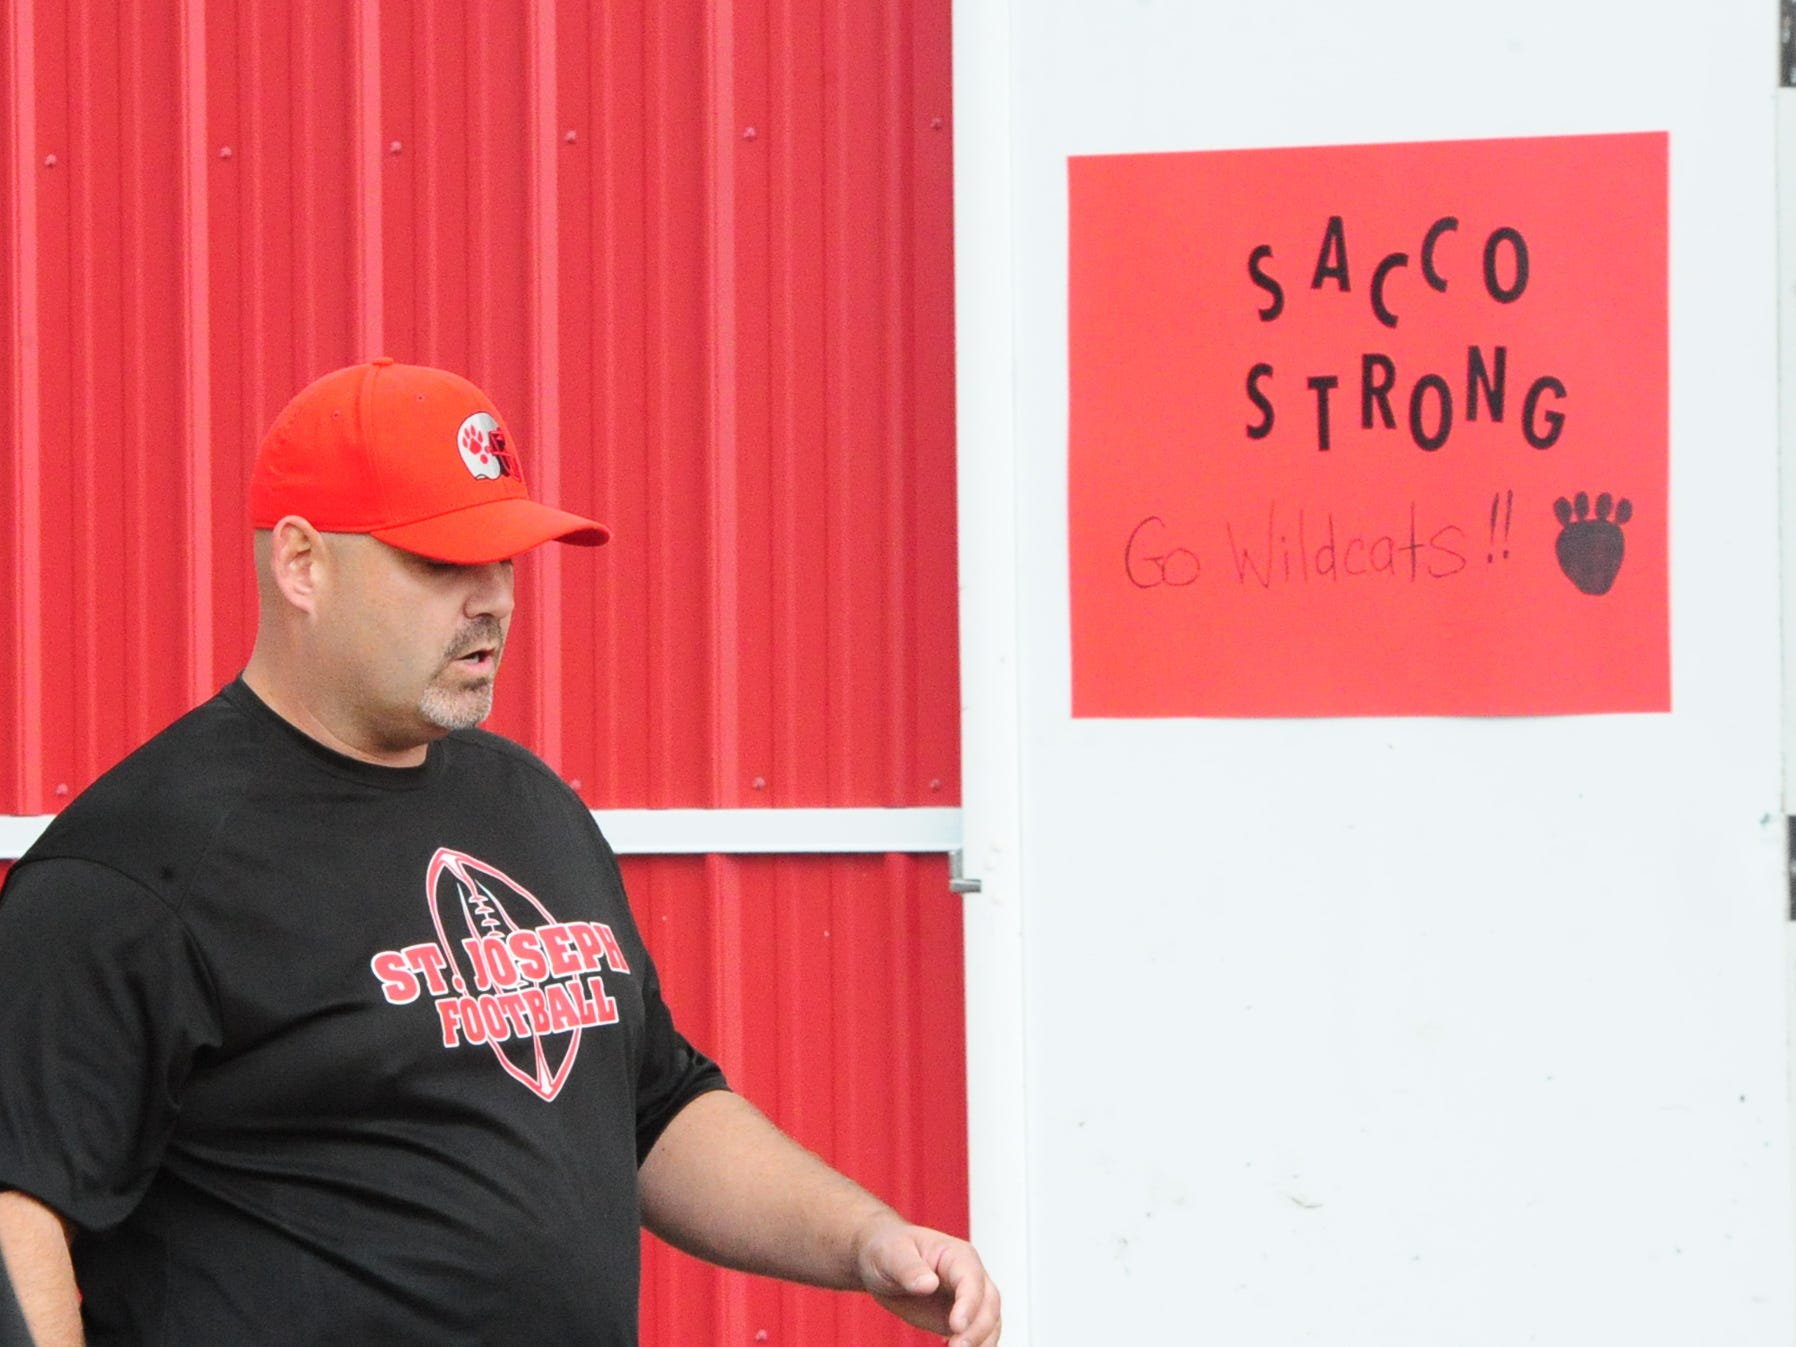 St. Joseph interim football coach Rick Mauriello walks past a sign in support of Head coach Paul Sacco before Saturday's game against West Deptford played in Hammonton on Saturday, October 13, 2018. \